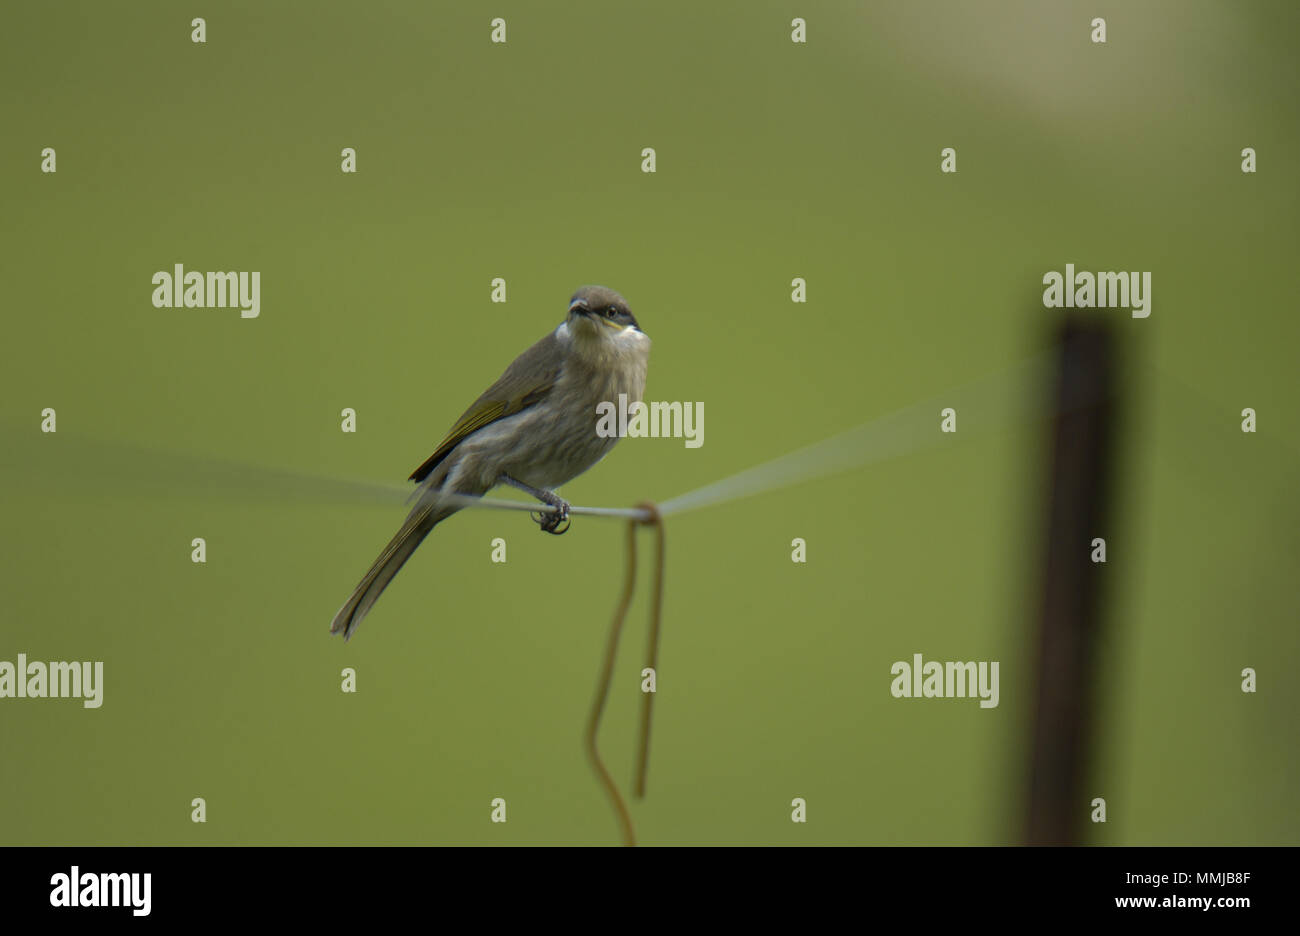 singing honeyeater (Gavicalis virescens) is a small bird found in Australlia and is part of the honeyeater family (Meliphagidae). - Stock Image